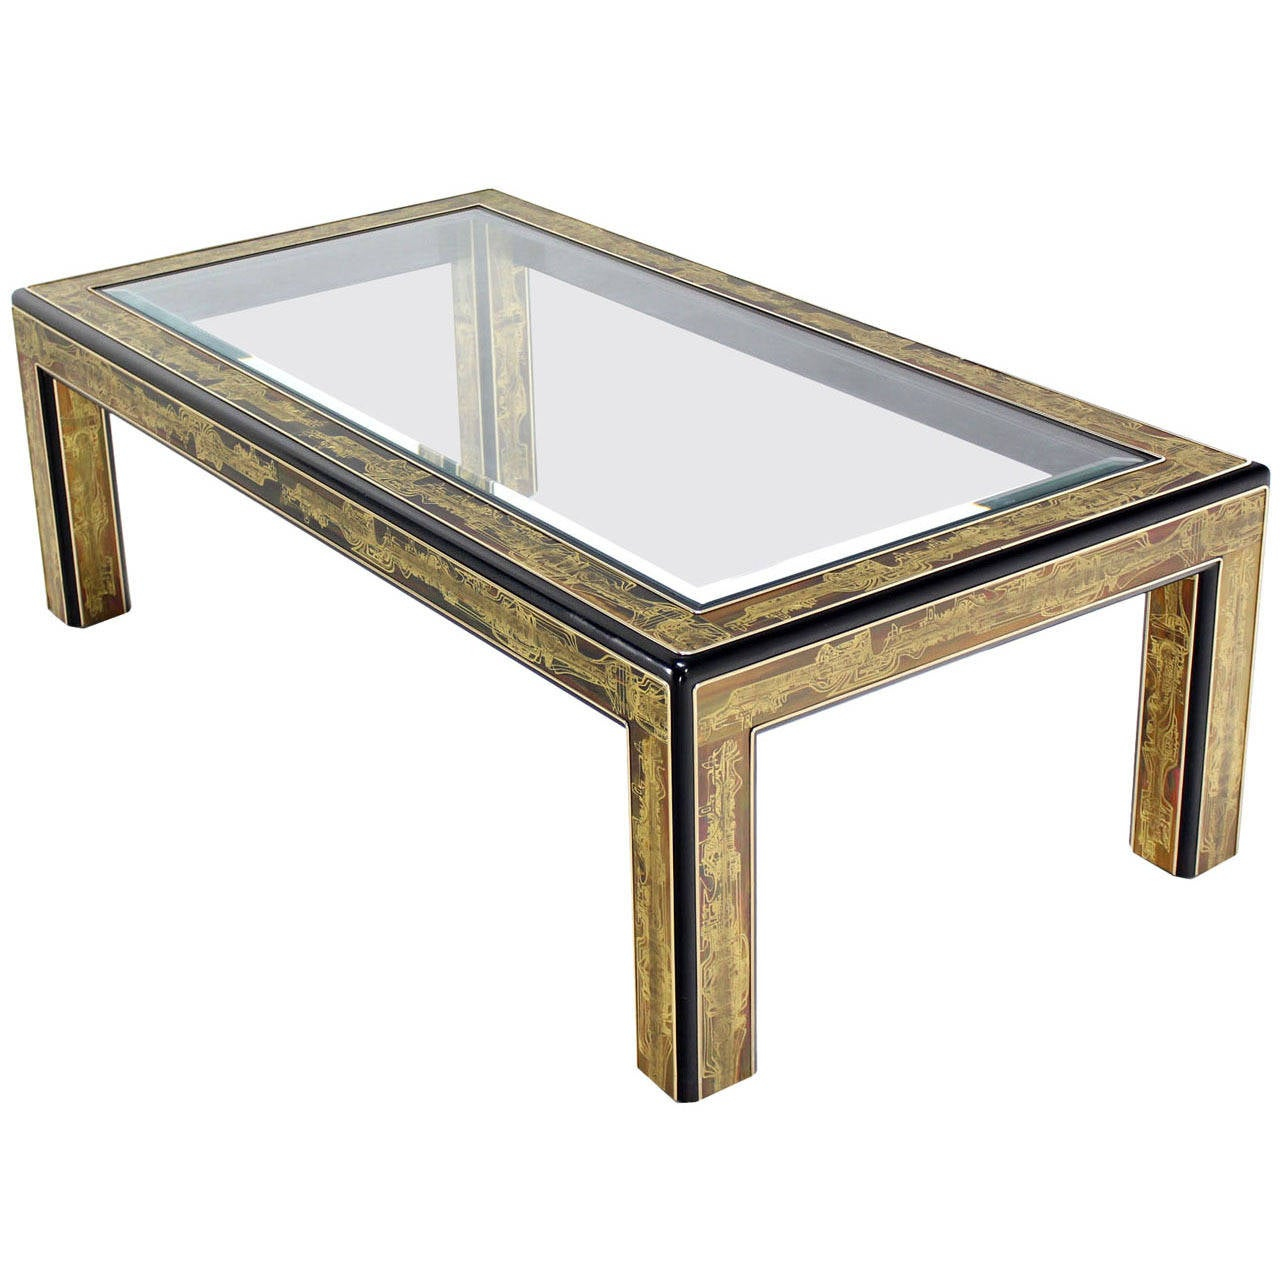 Rectangular Glass Top Brass And Wood Base Coffee Table By Mastercraft 1